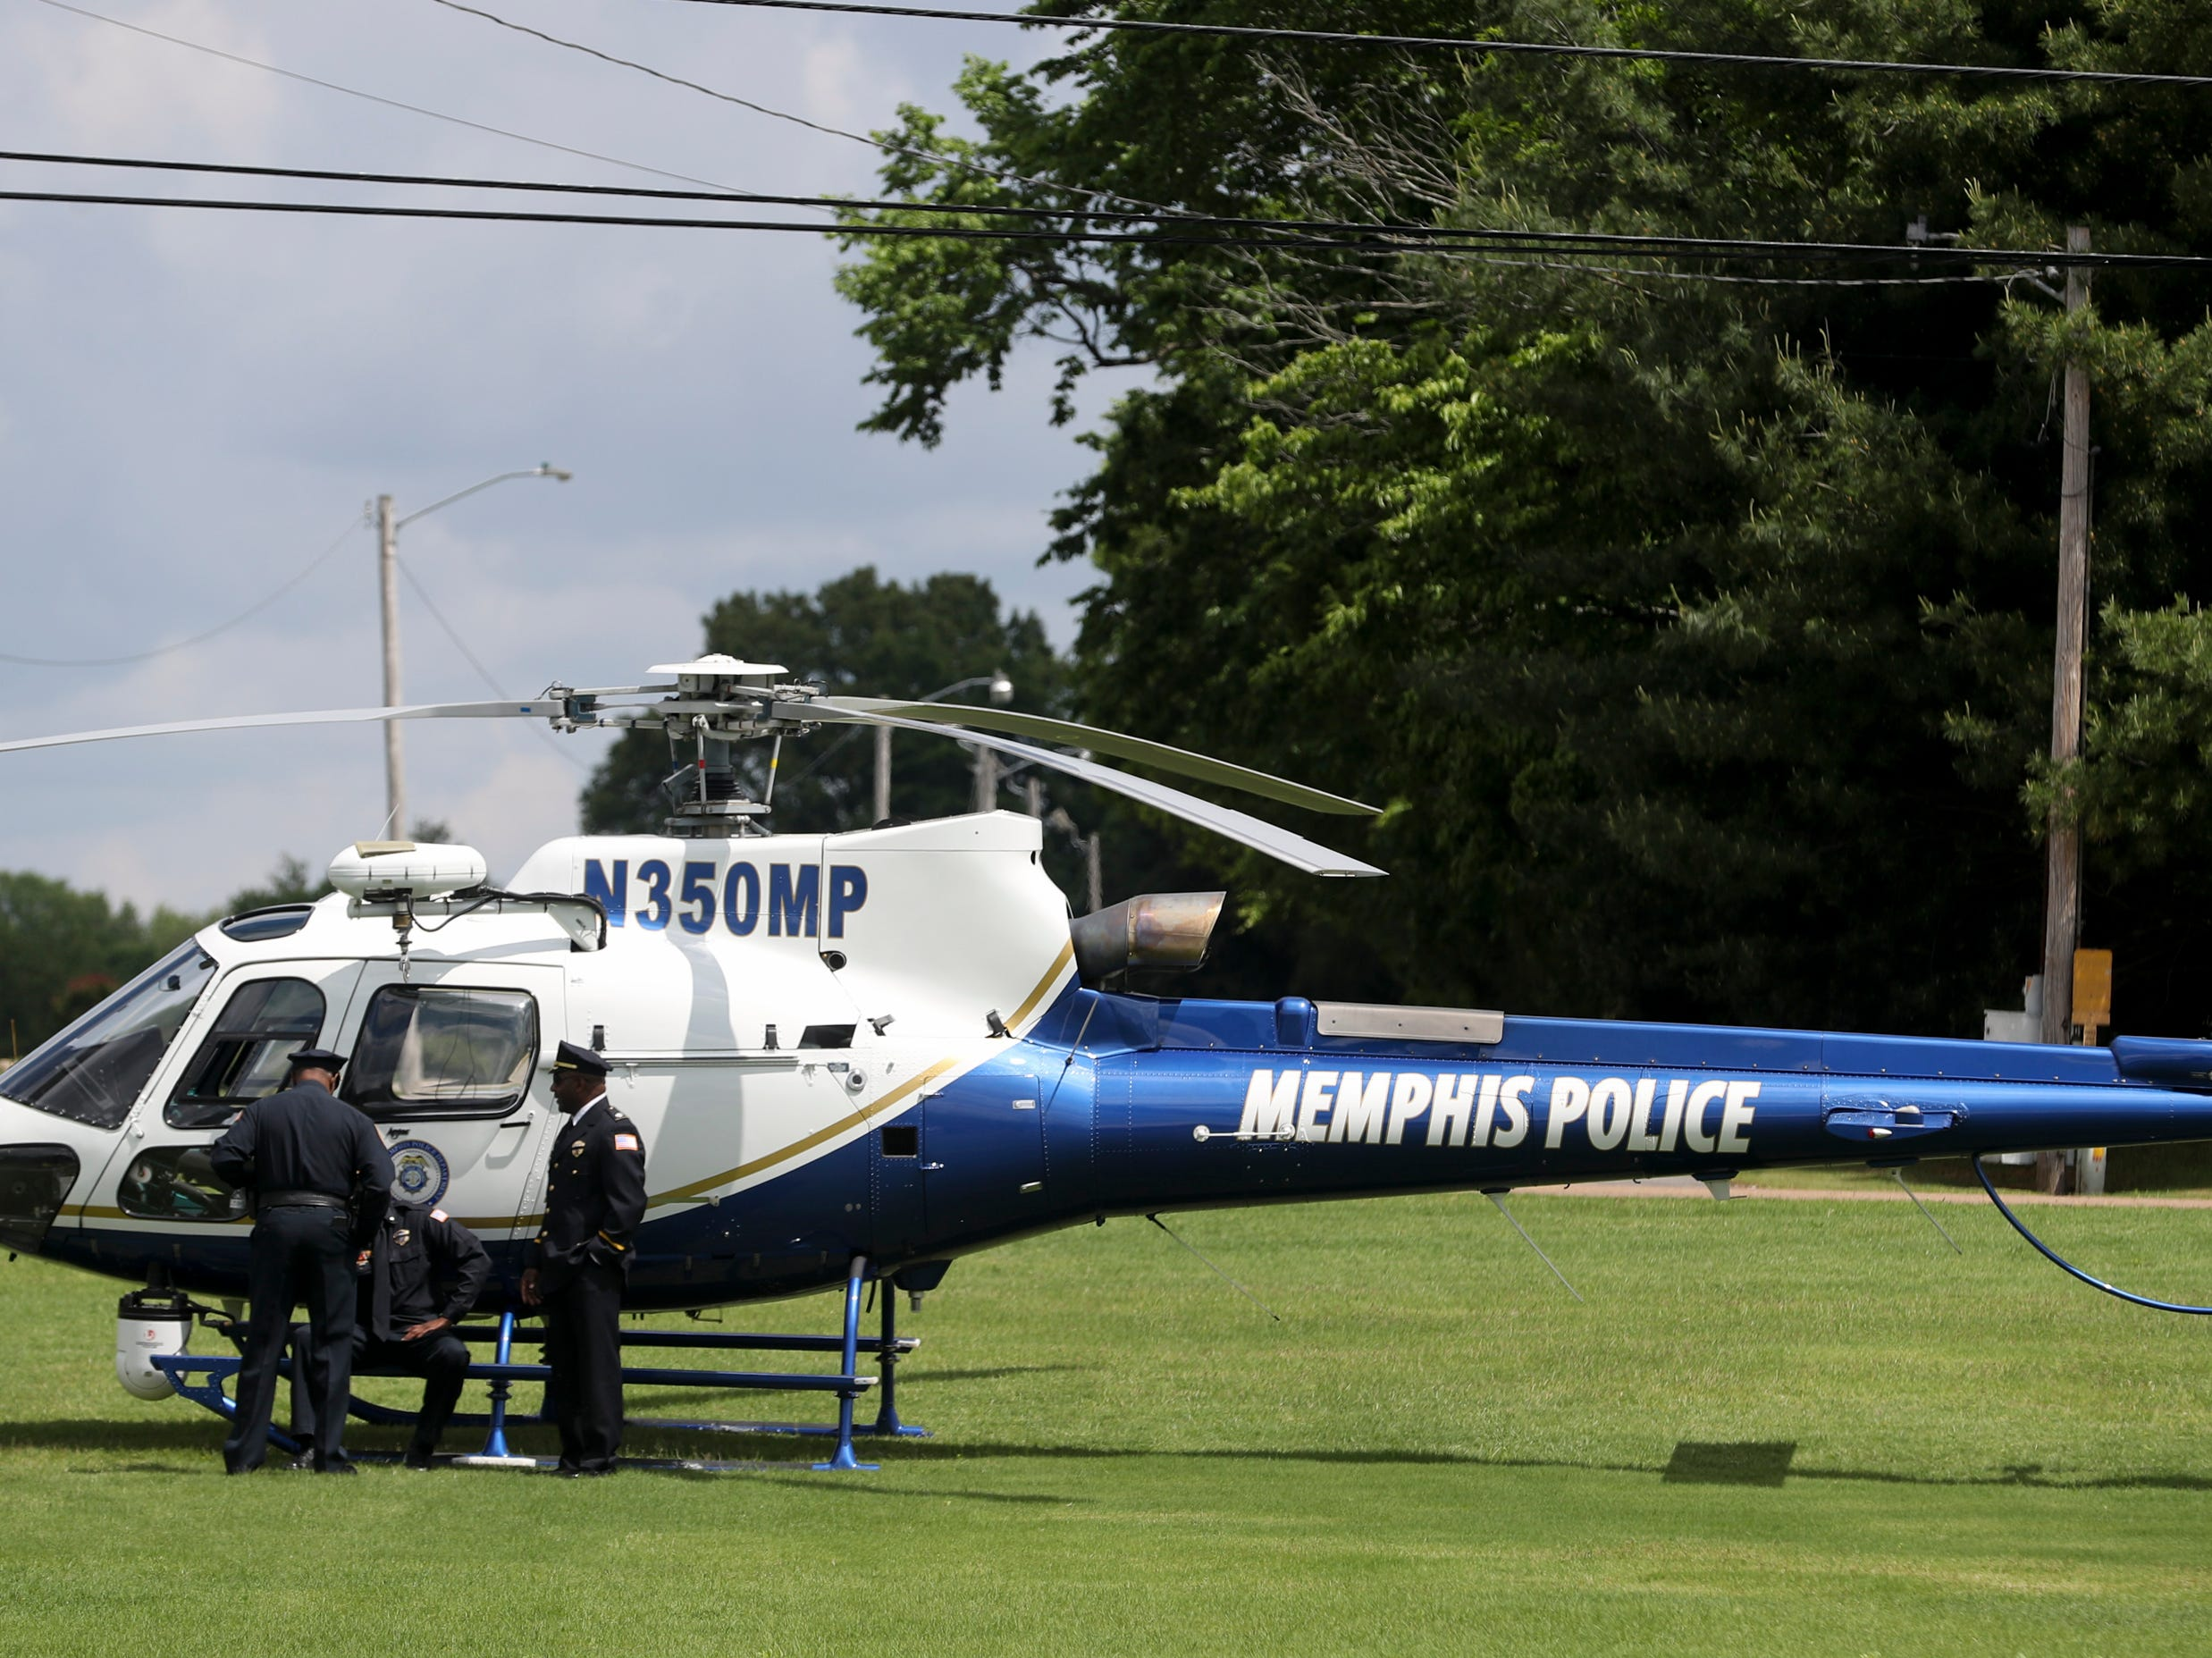 A Memphis Police helicopter is seen outside of the church before the funeral service for Tennessee State Trooper Matthew Gatti at West Jackson Baptist Church in Jackson, Tenn., Monday, May 13, 2019. Gatti died in the line of duty in an accident while responding to a car fire on I-40 in Madison County on May 6.